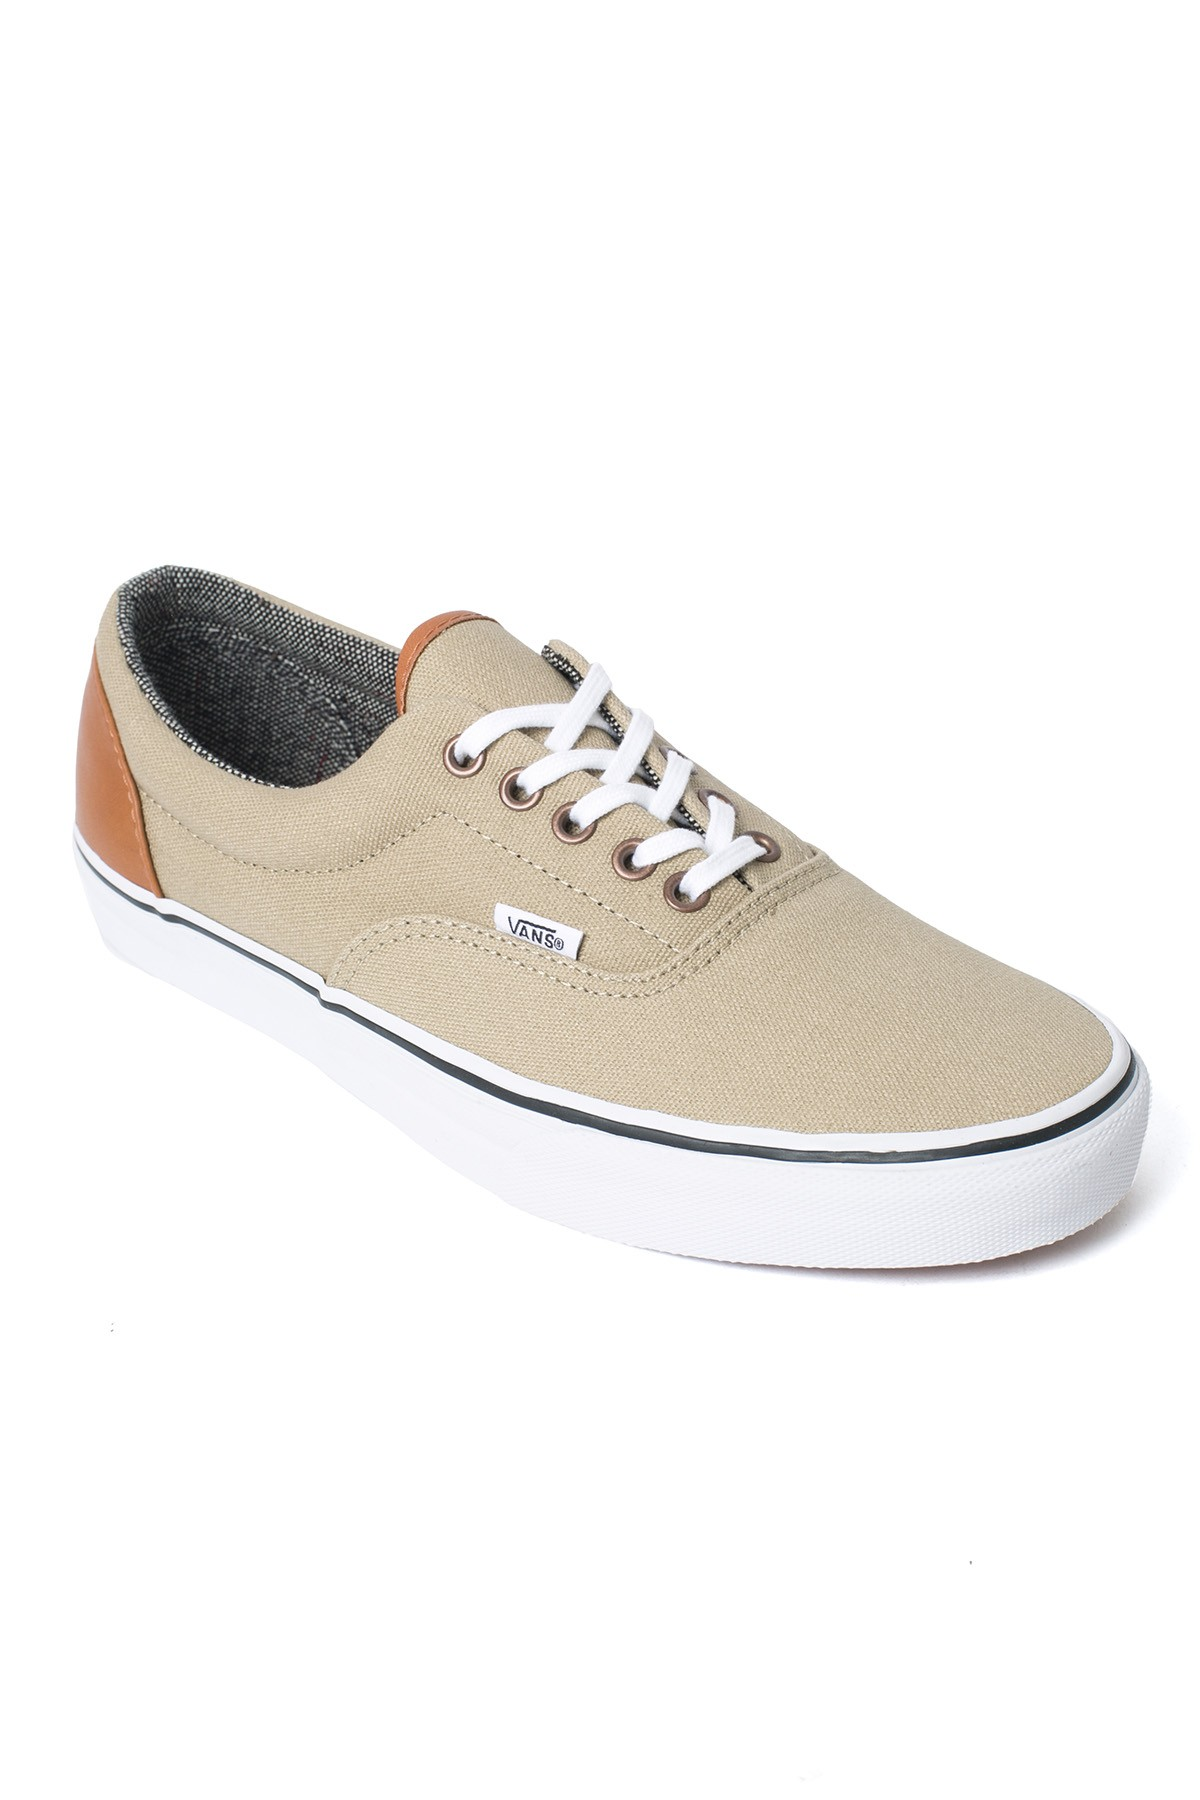 f95a549884 Era - (C L) Light Khaki TweedMens - Flying Point Surf